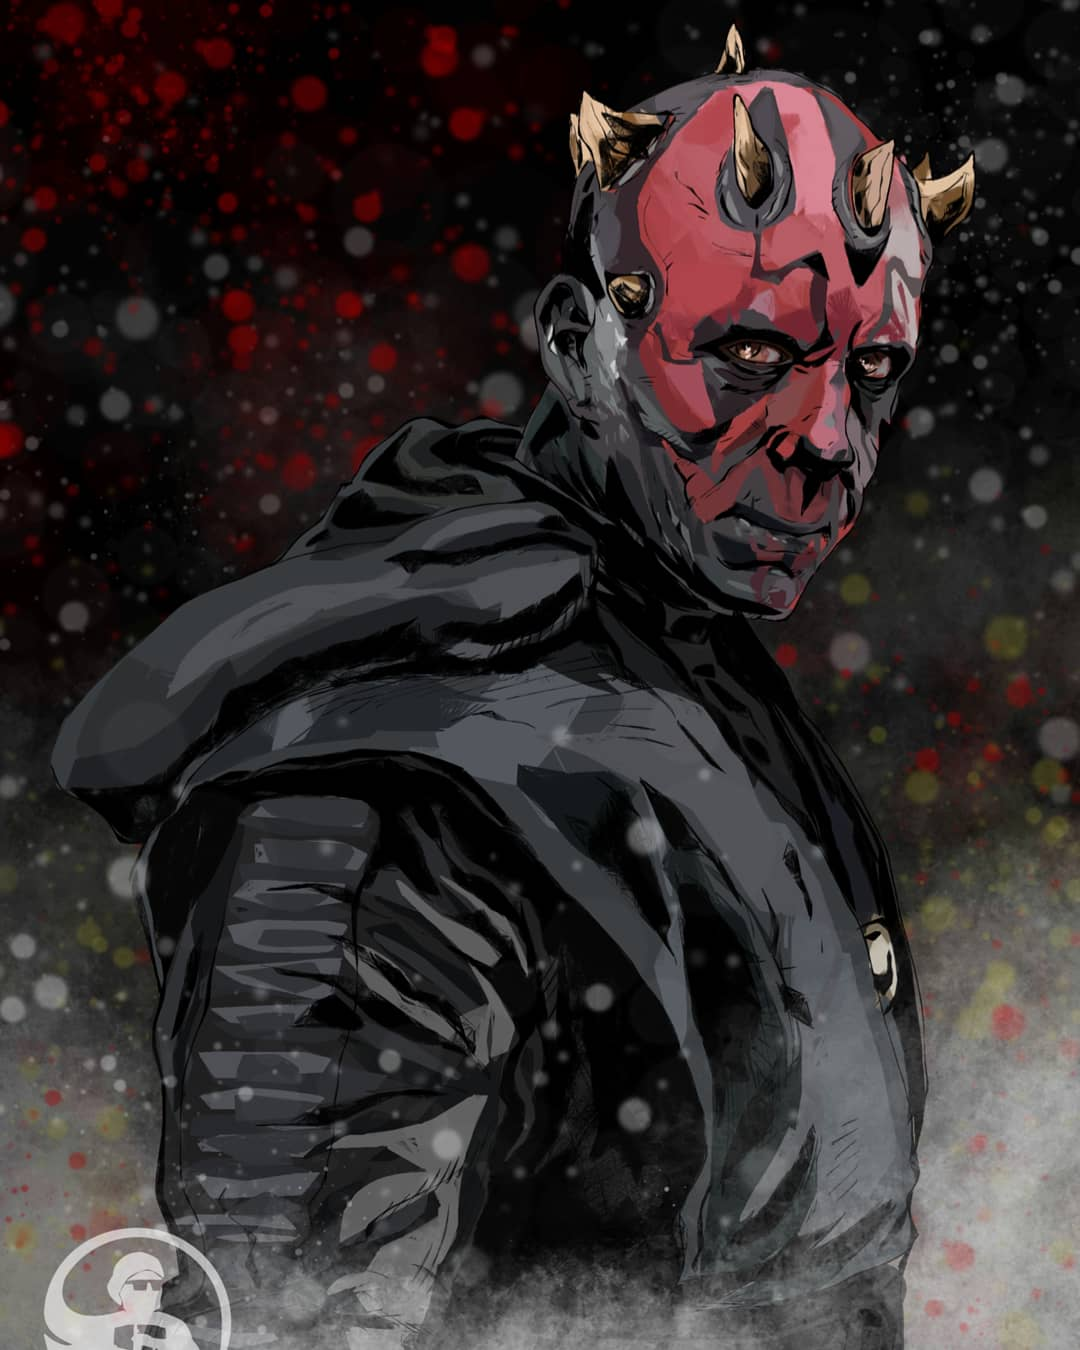 As promised, my finished Darth Maul Illustration based on Ray Park\'s Maul from Solo!